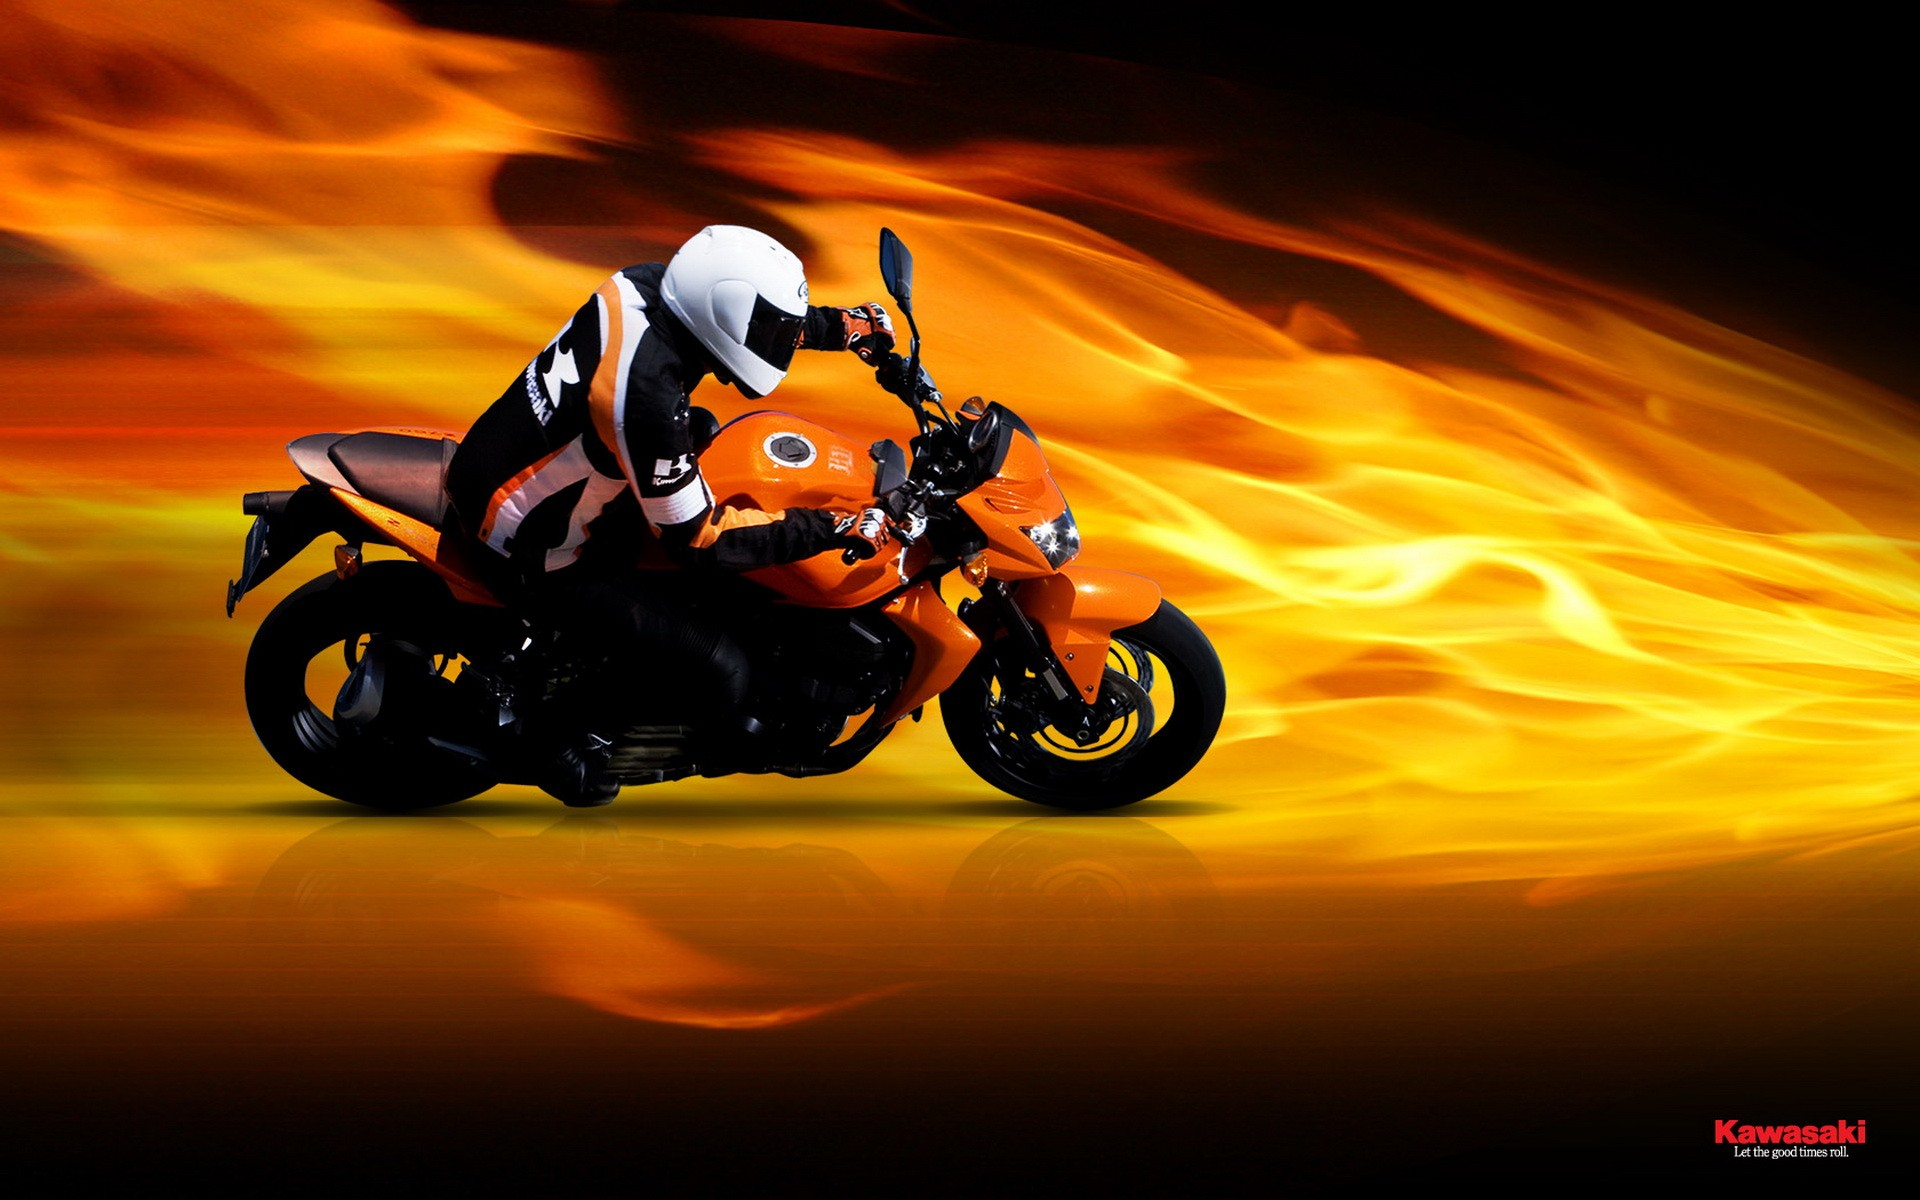 Biker Wallpapers and Screensavers - WallpaperSafari